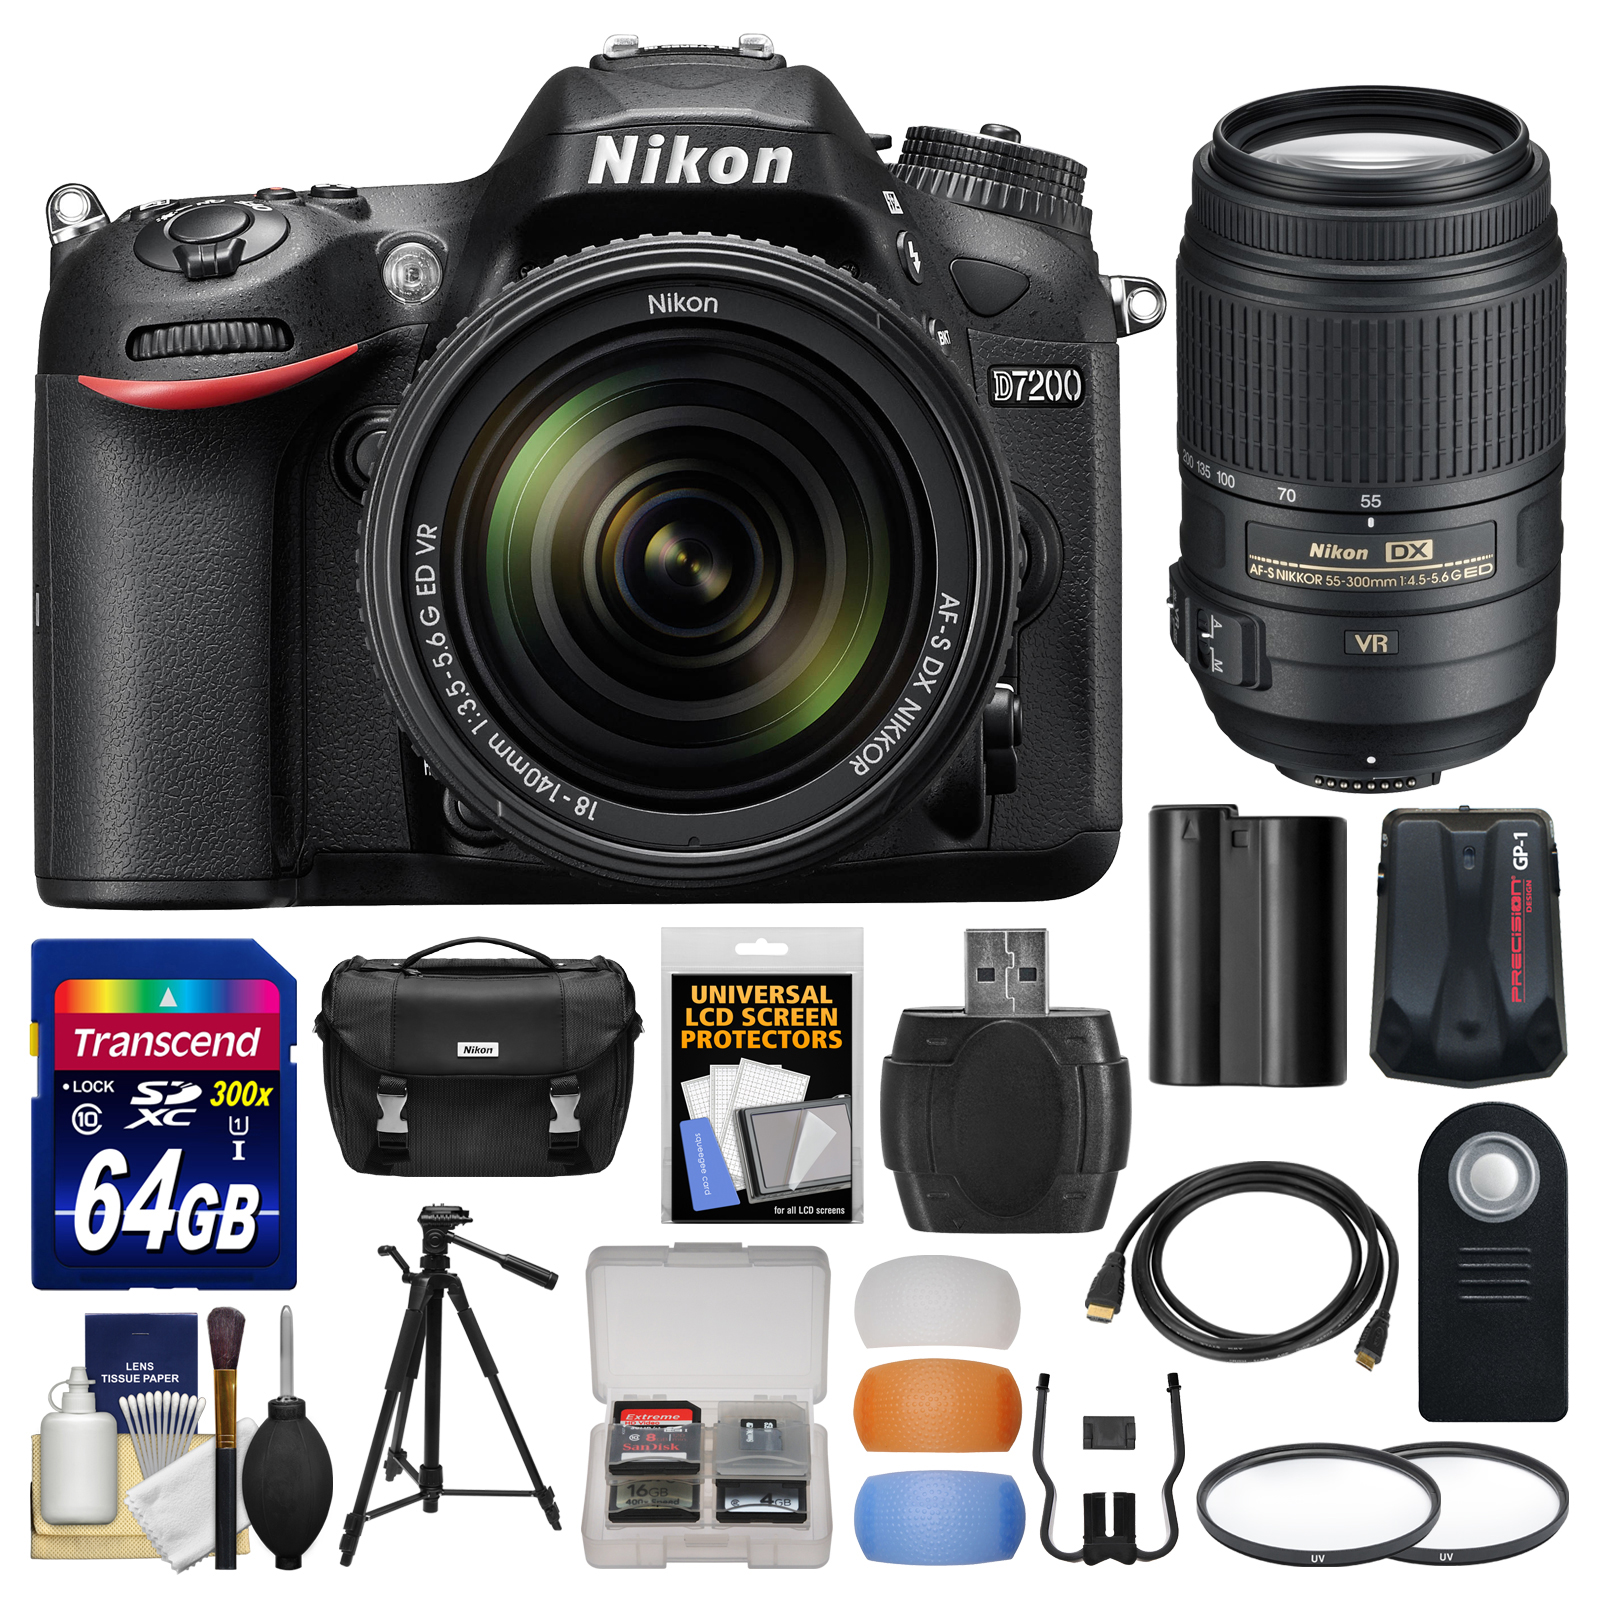 Nikon D7200 Wi-Fi Digital SLR Camera & 18-140mm VR DX & 55-300mm VR Lens with 64GB Card + Case + Battery + Tripod + Kit